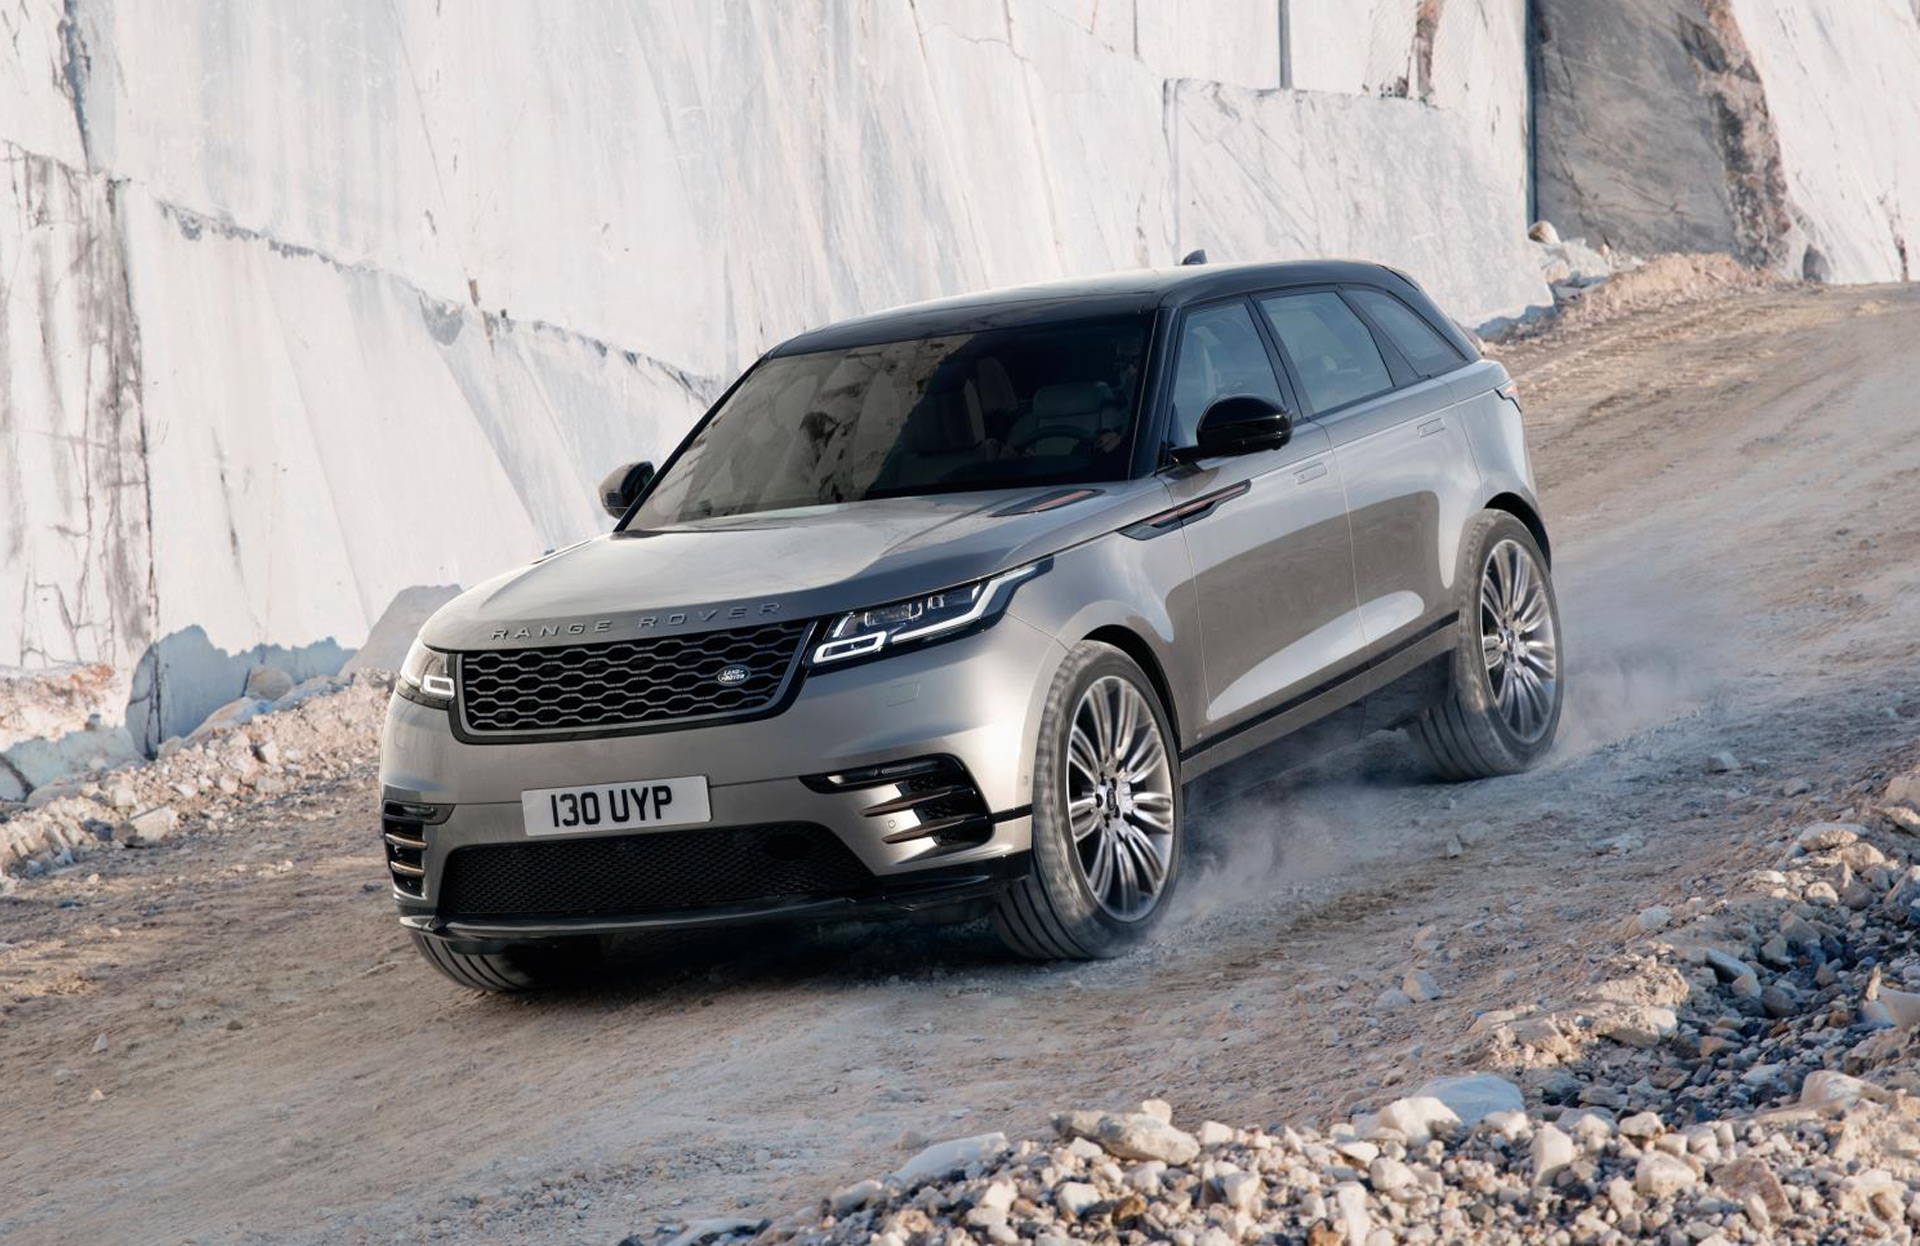 2018 Land Rover Range Rover Velar preview